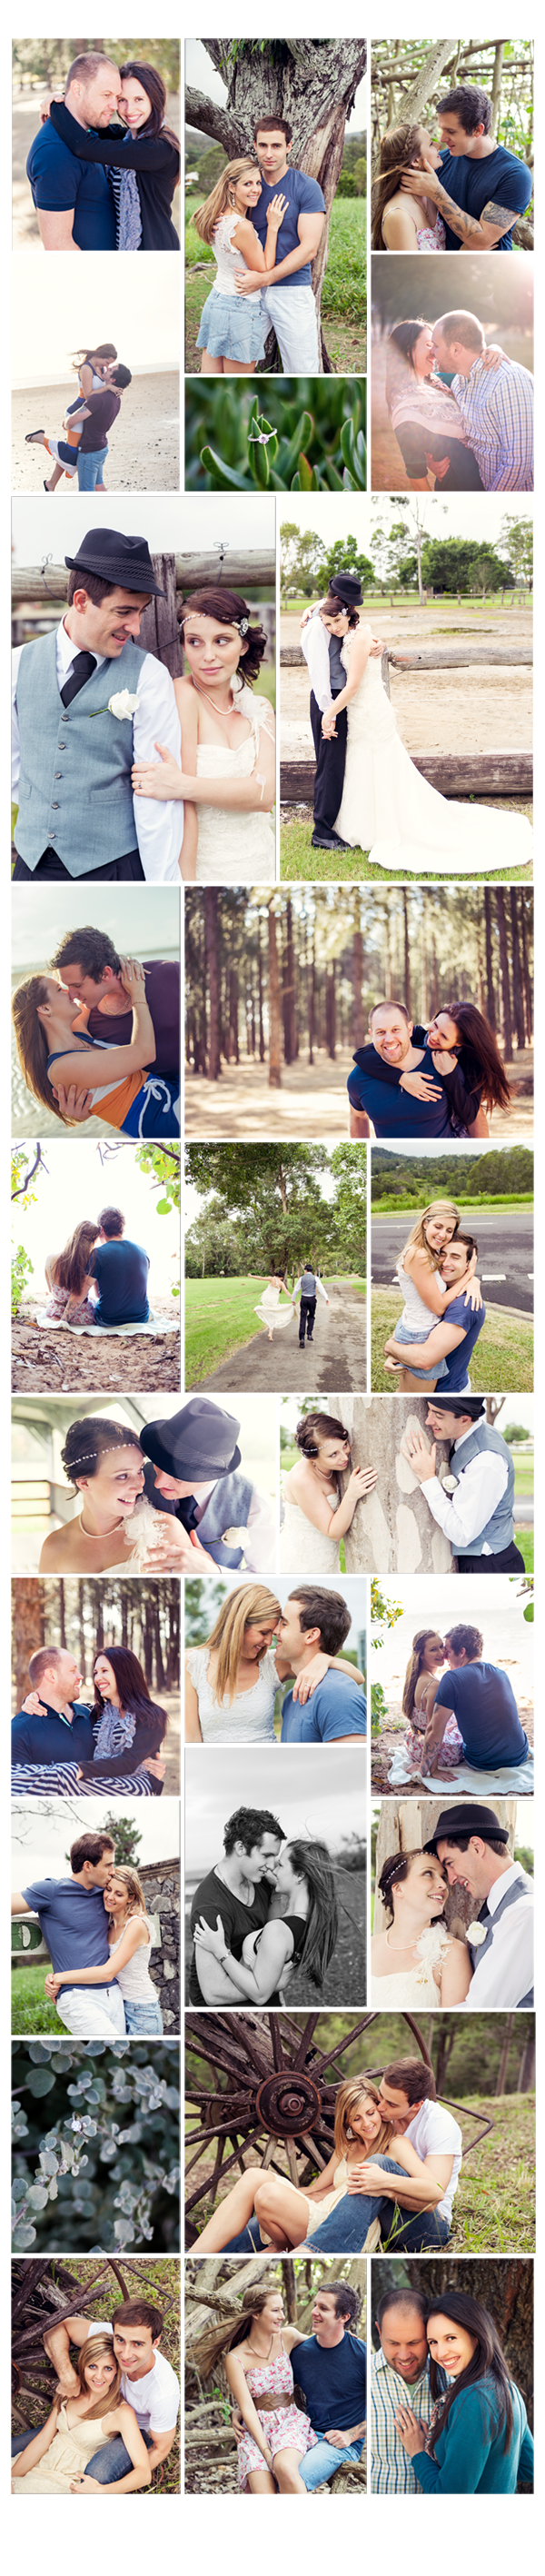 Thank you Sonja Griffioen Photography - Client Testimonials | Brisbane wedding & portrait photographer